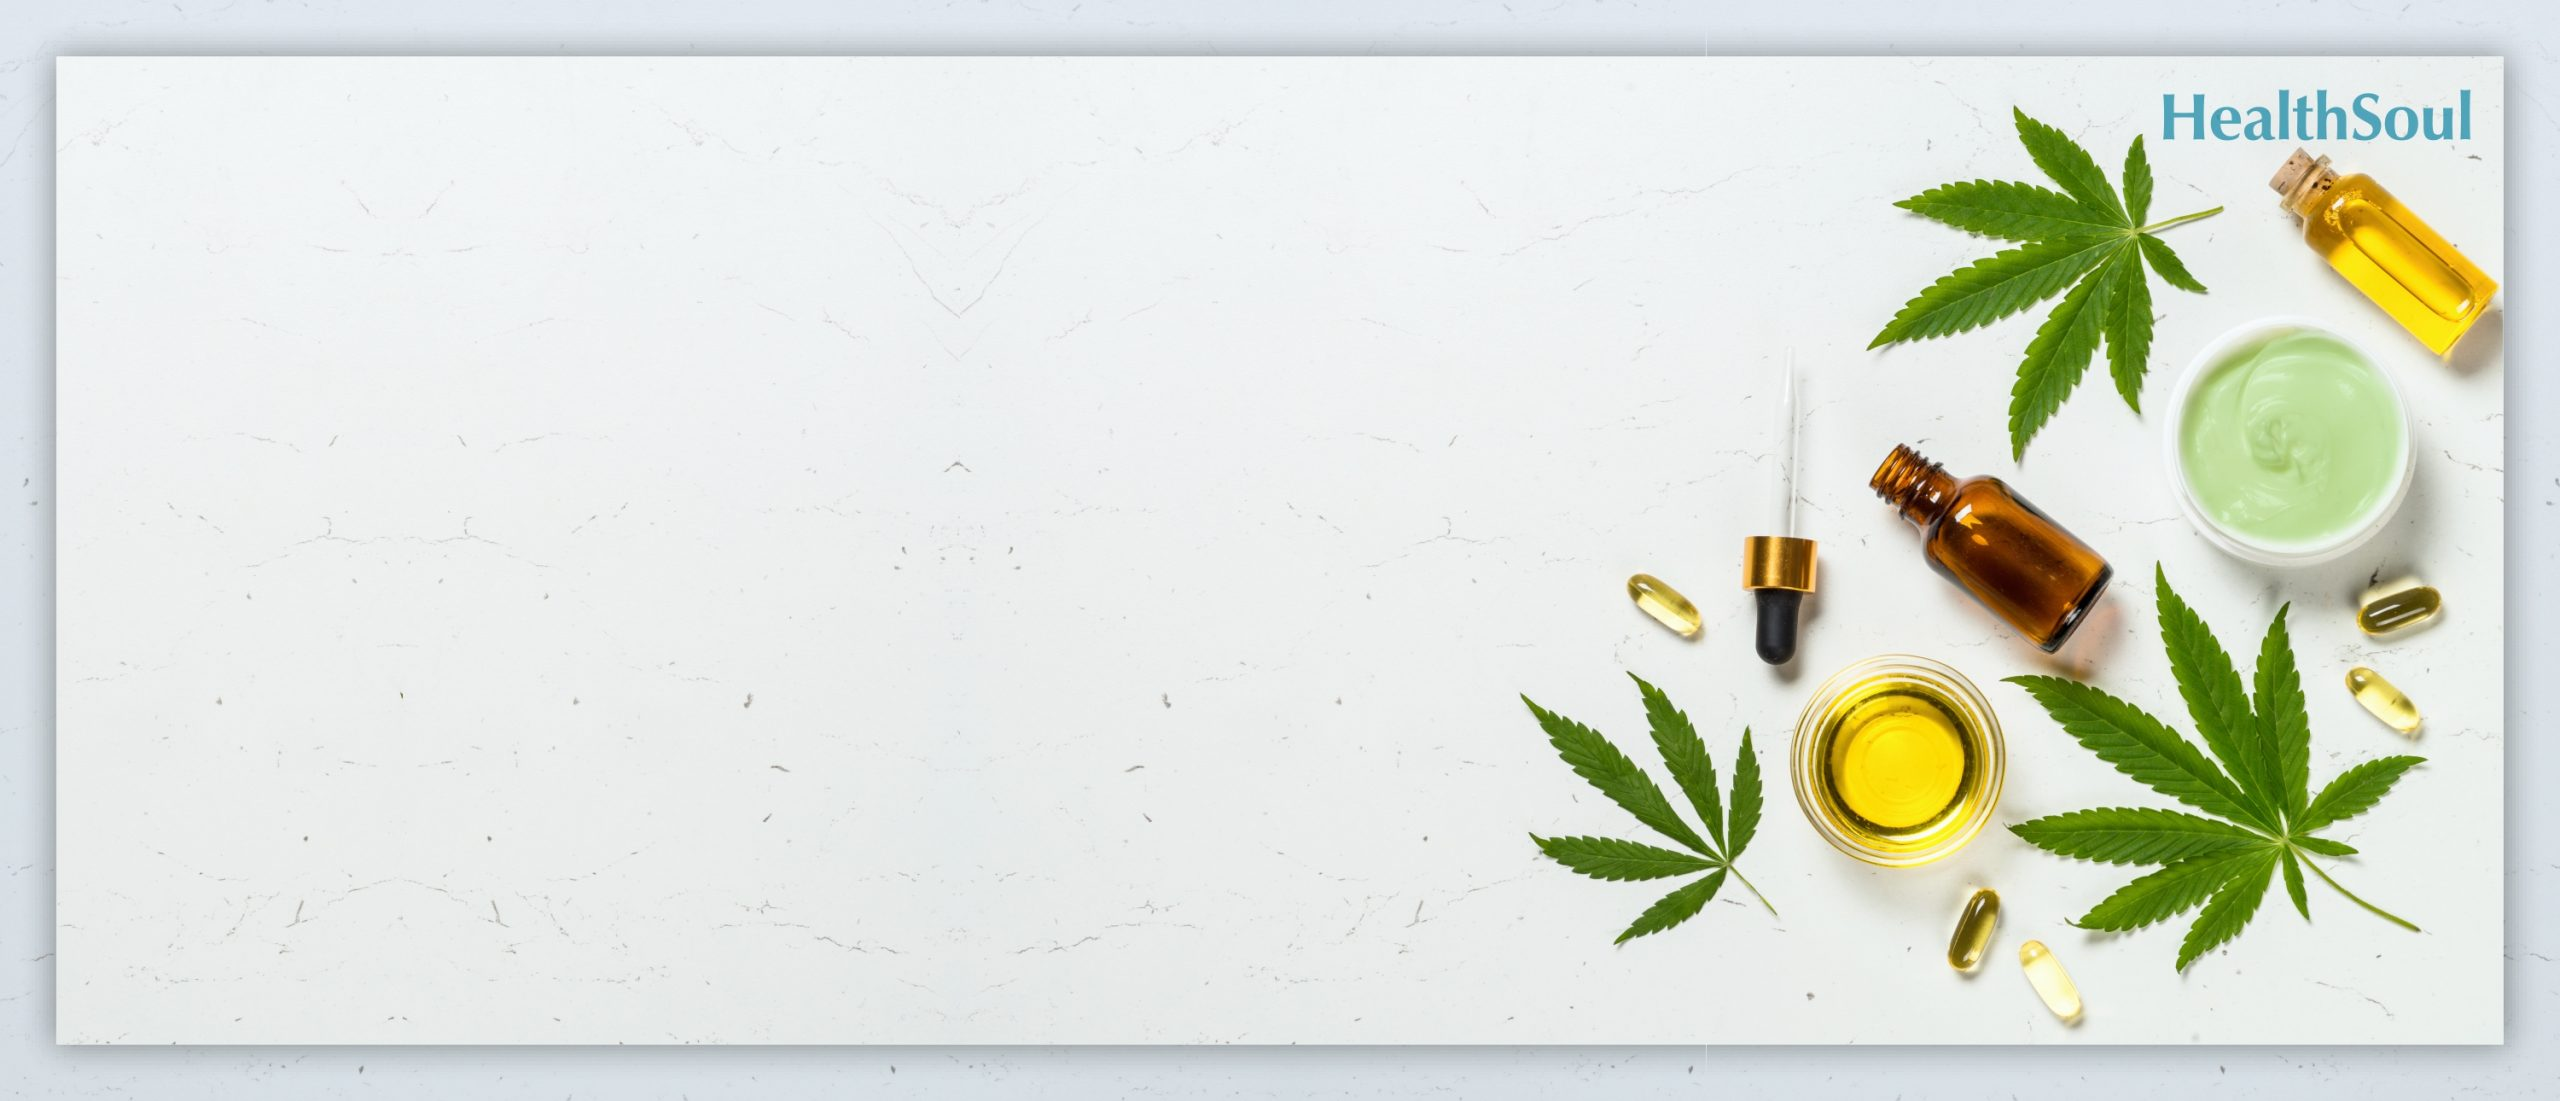 A Beginners Guide - How to take CBD Oil As A Newbie | HealthSoul